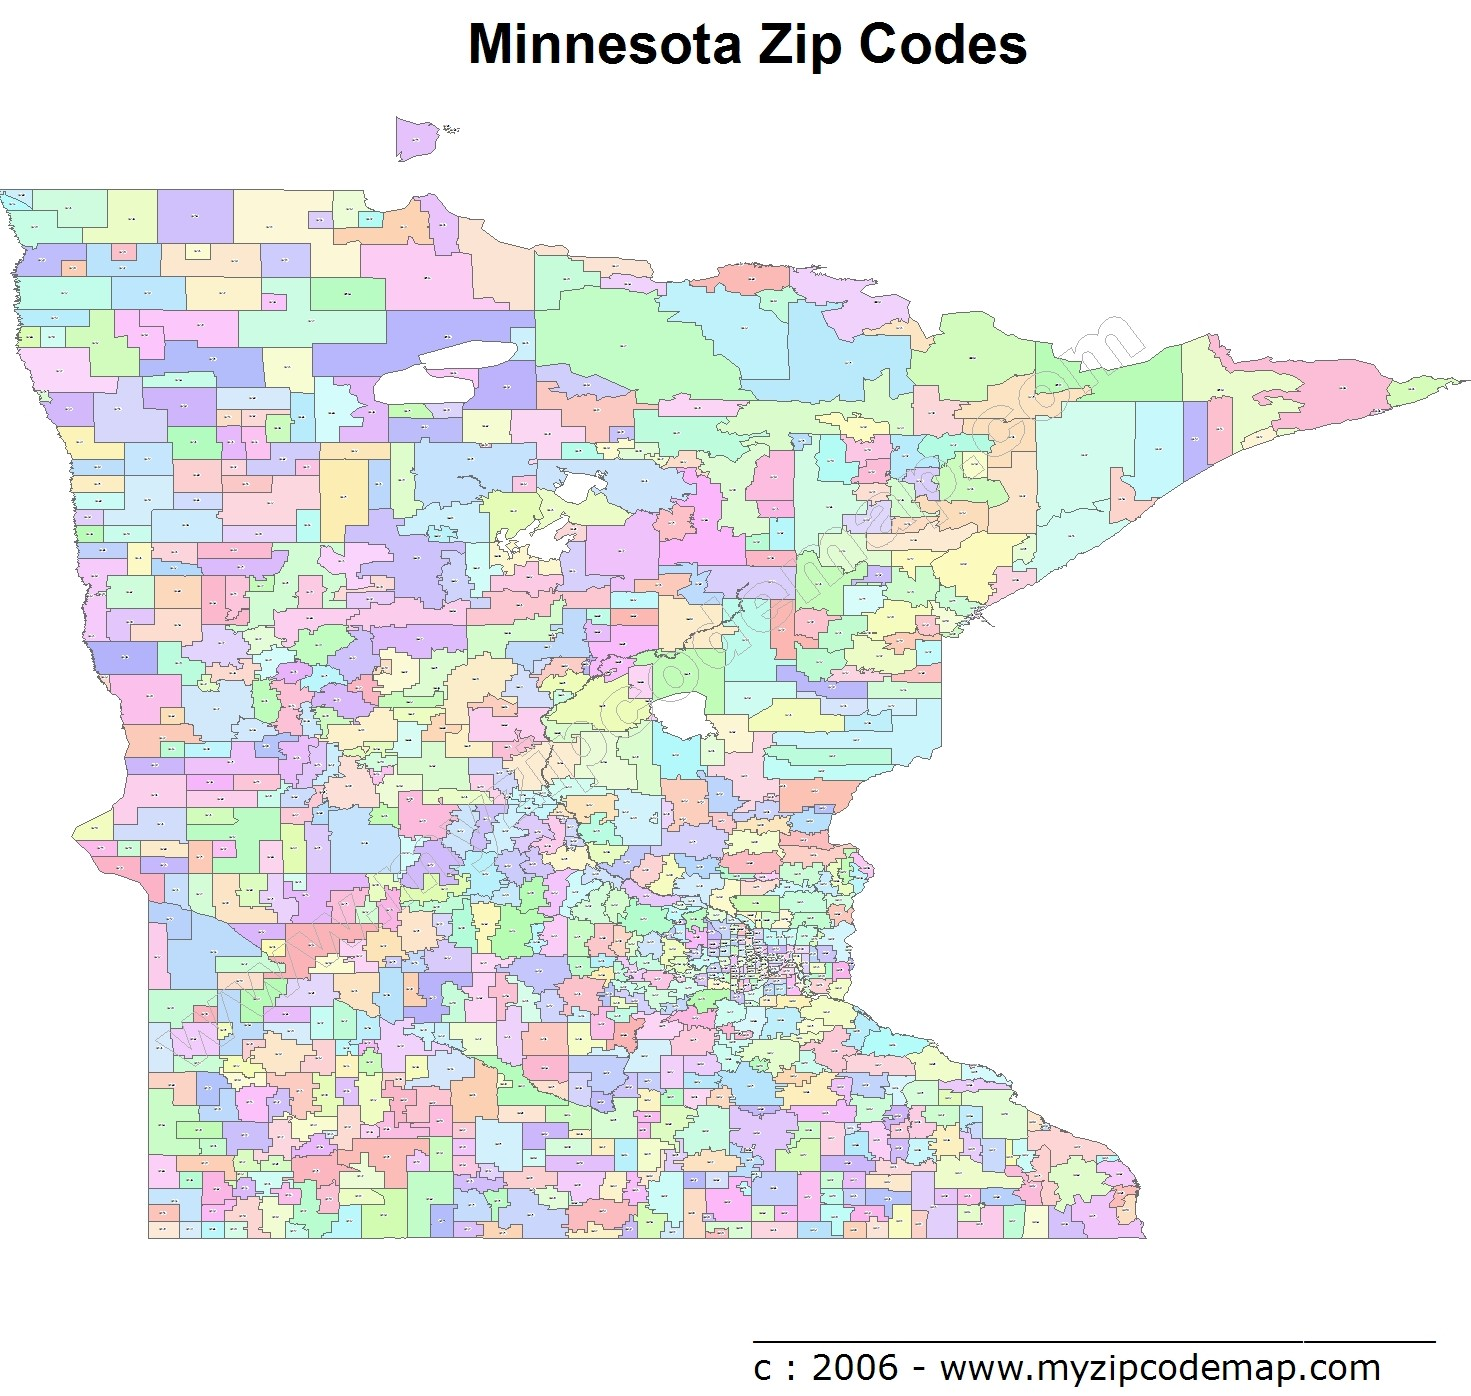 Minnesota Zip Code Maps  Free Minnesota Zip Code Maps